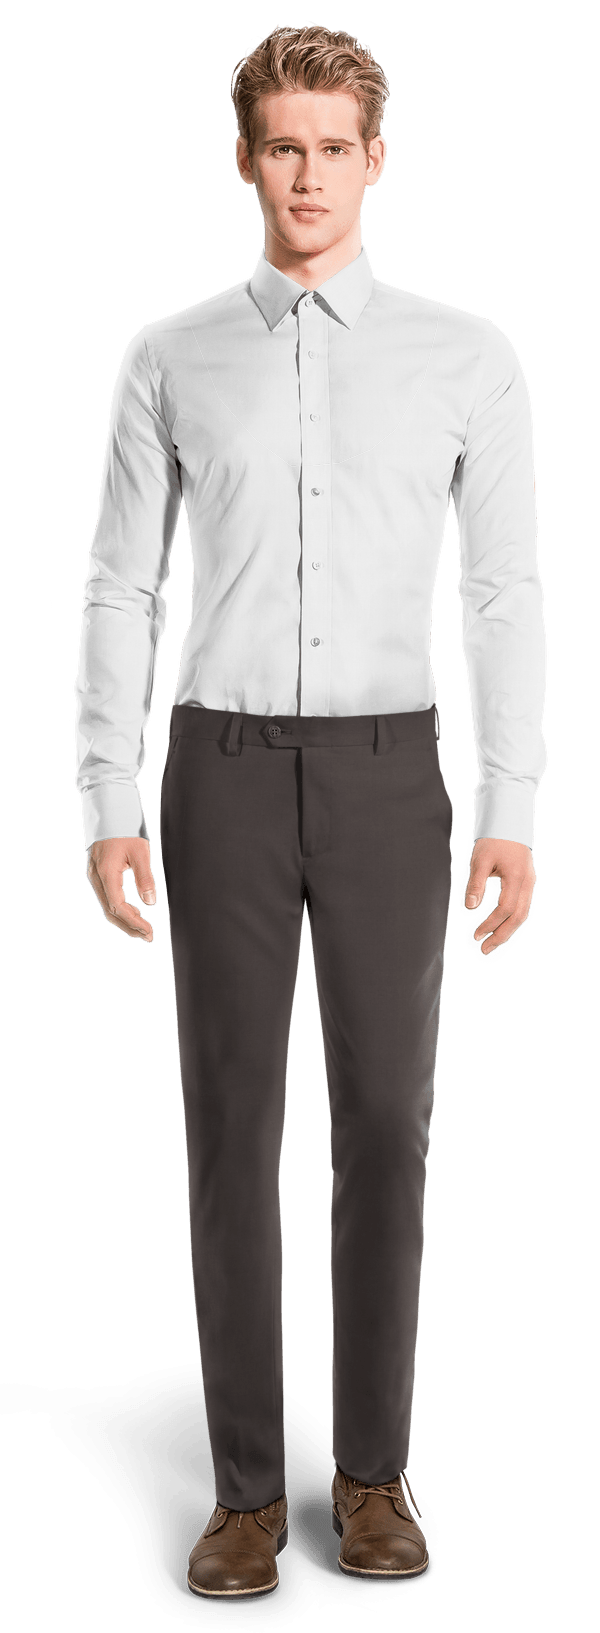 Pantaloni chino slim fit grigi